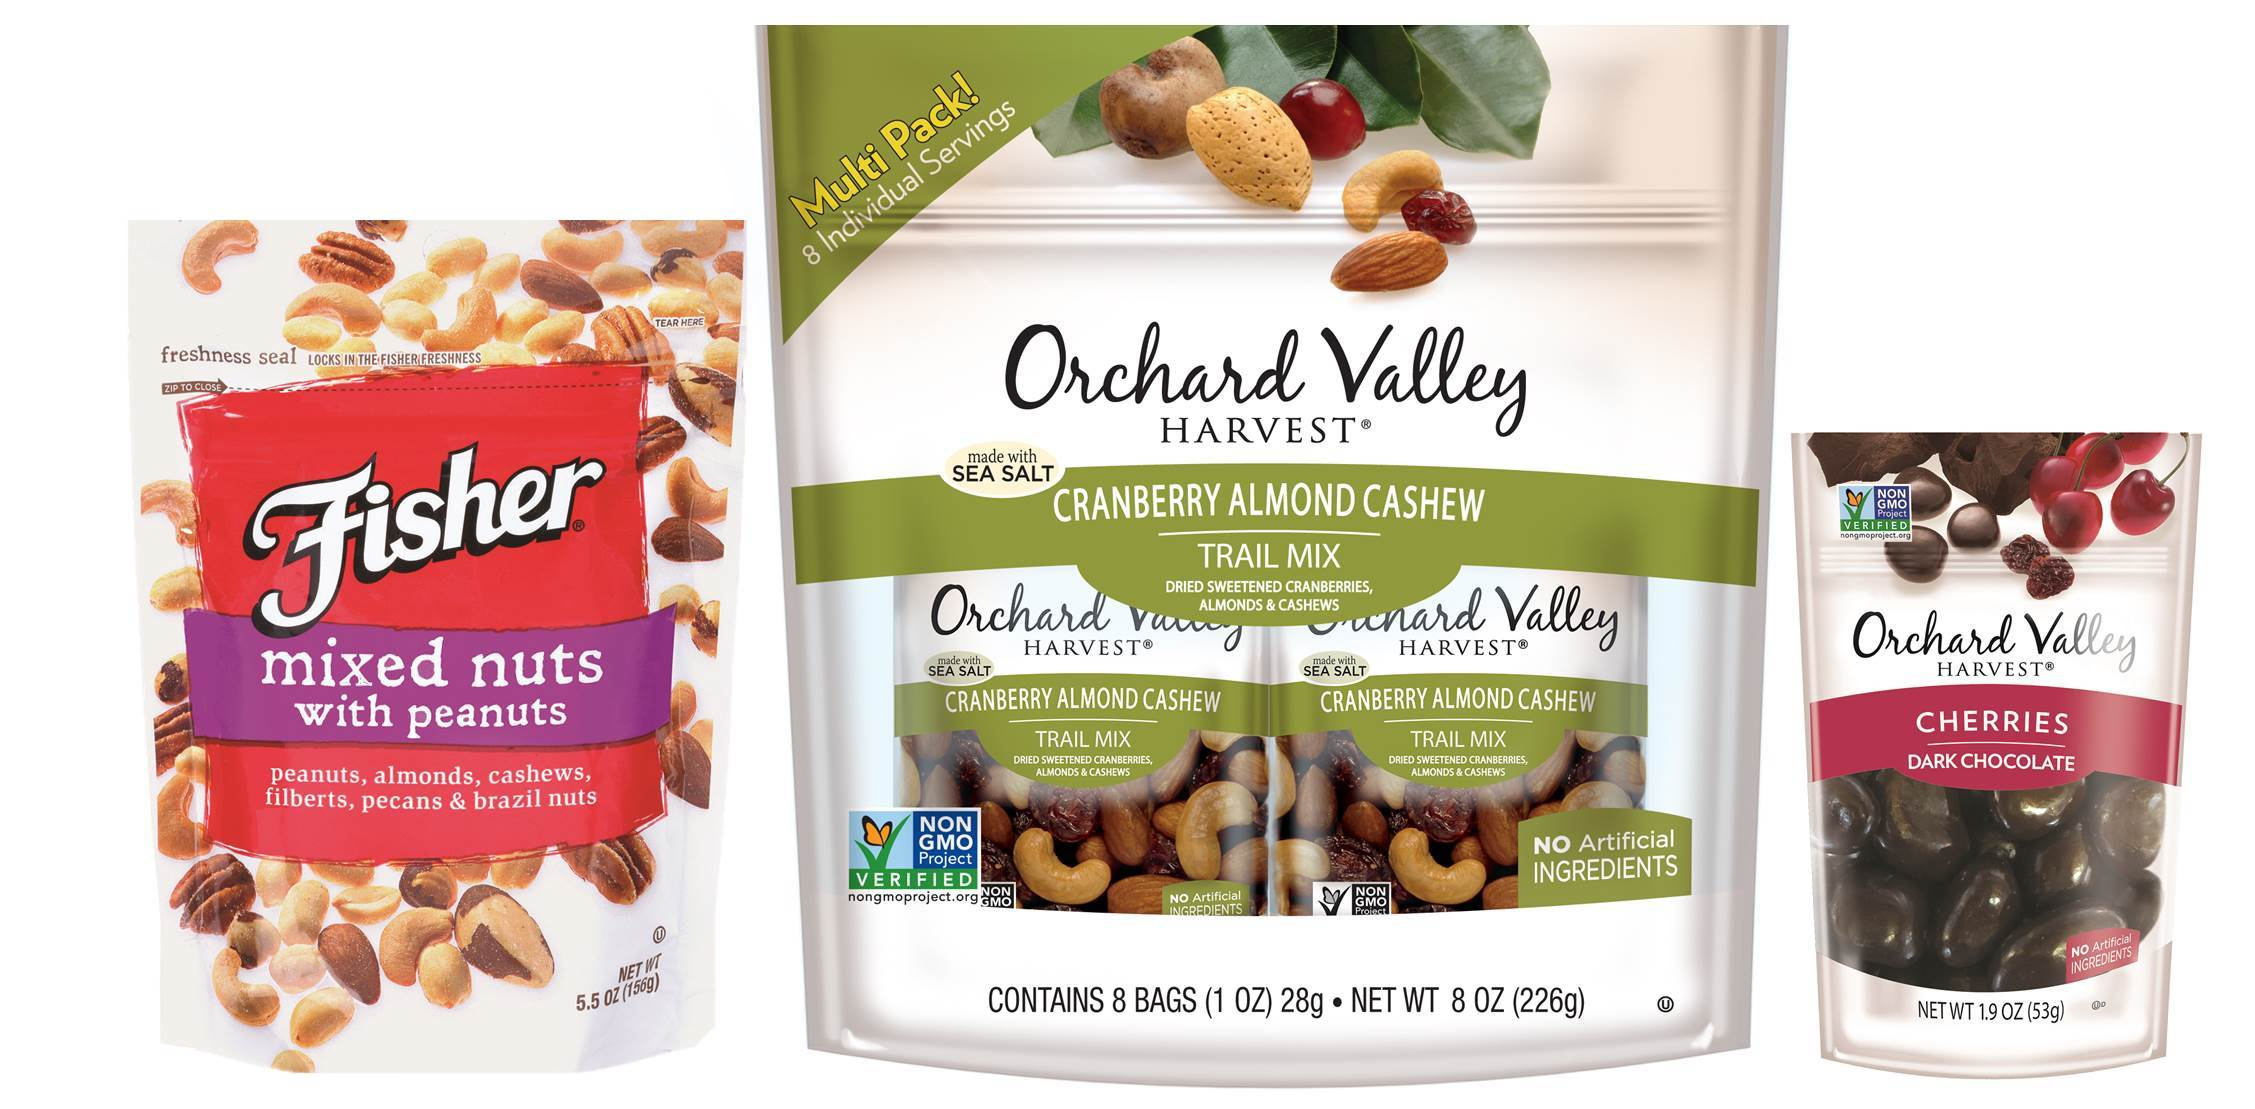 John B. Sanfilippo & Son, Inc. Receives Graphic Design Awards for Innovative Packaging (Photo: Business Wire)